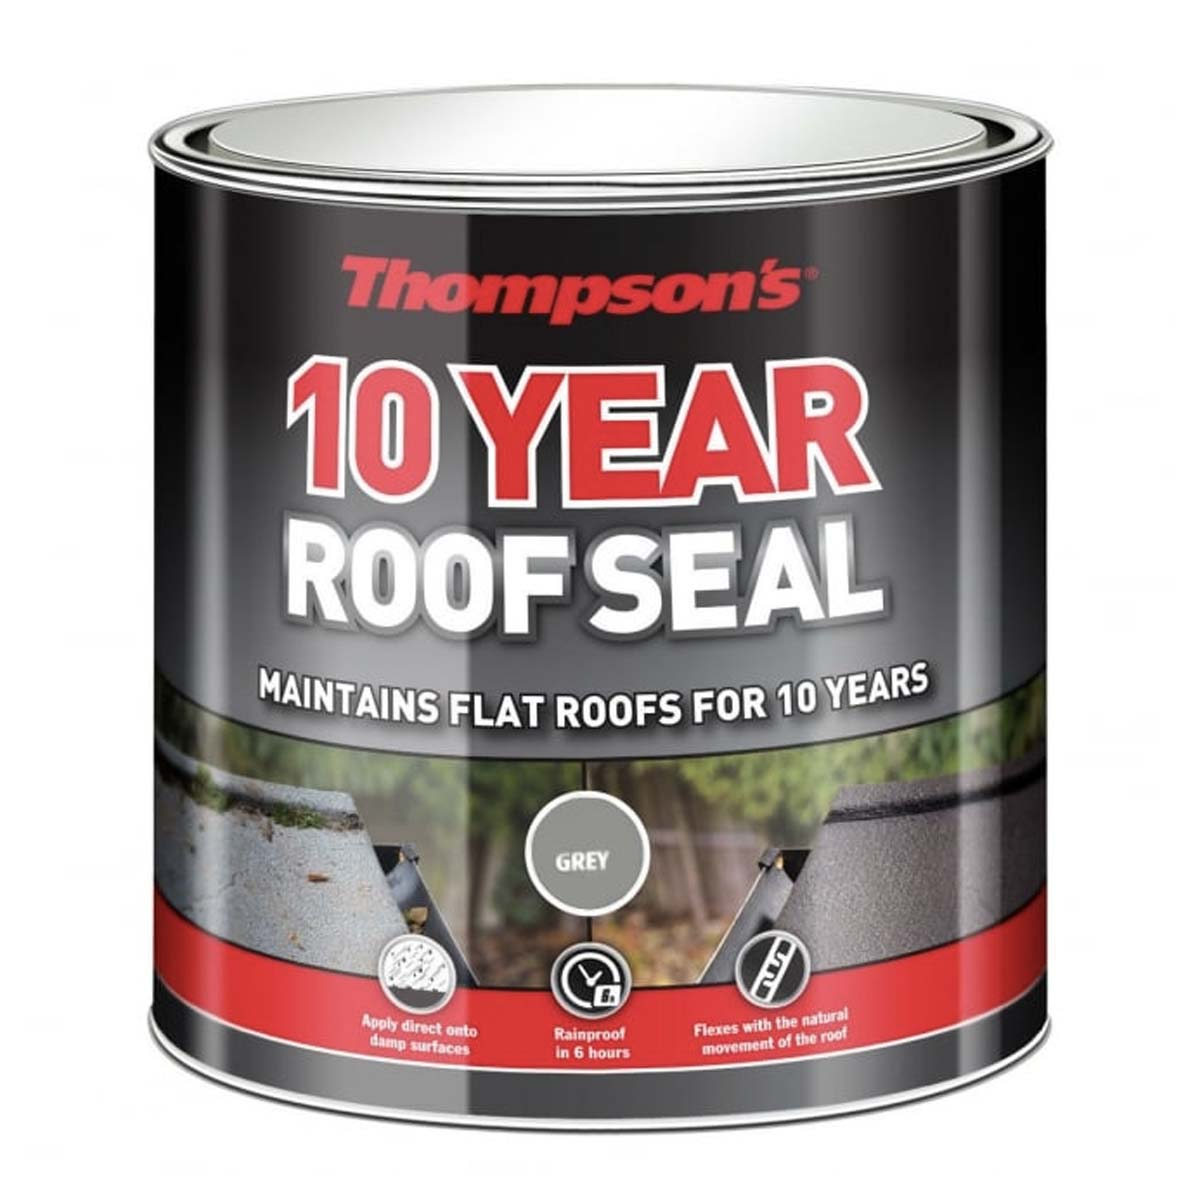 Thompson's 10YR Roof Seal (Grey) 1L (30143)